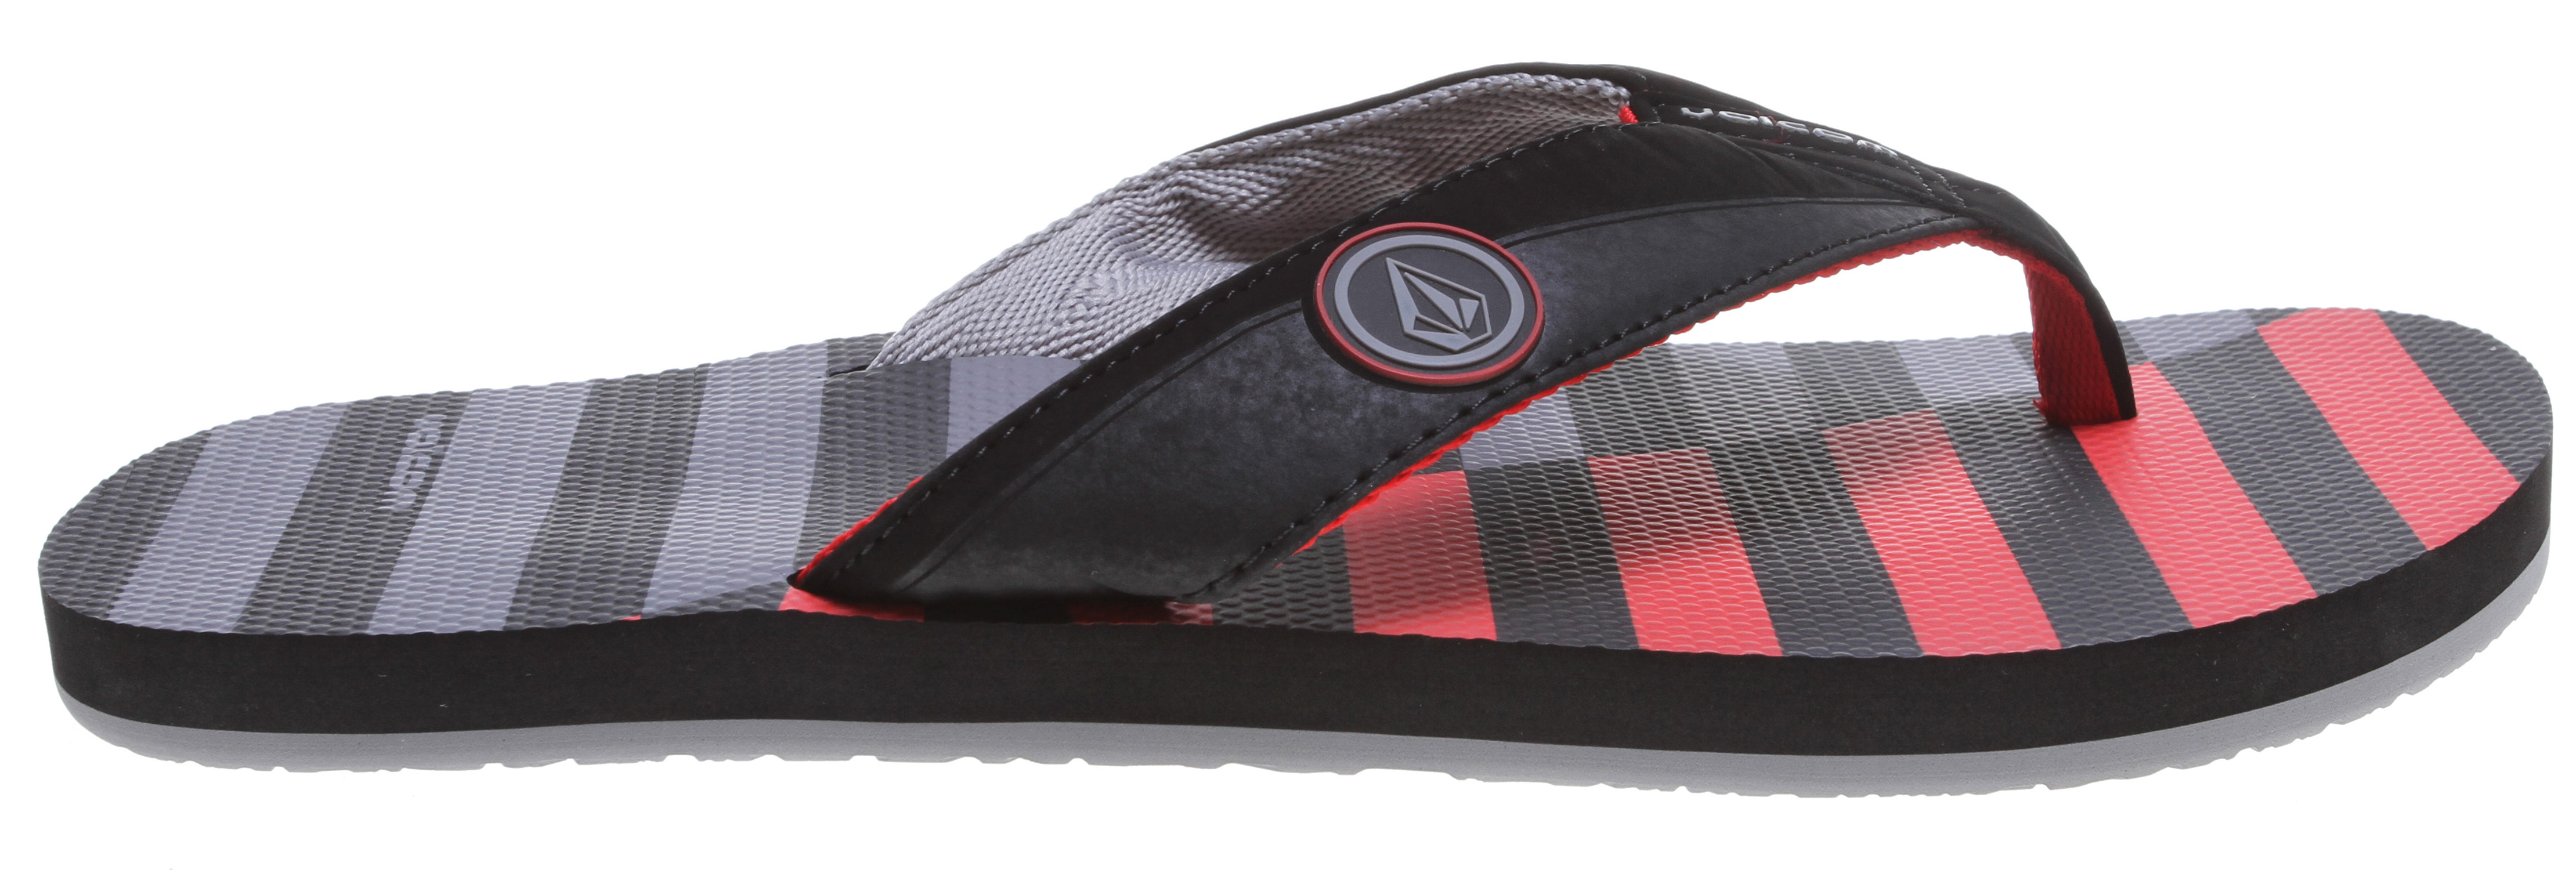 Surf Key Features of the Volcom Vocation Sandals: Synthetic Nubuck strap with high-density print logo, stitching details and webbing lining Textured, anatomical contour molded, dual density EVA top sole with arch support High density EVA outsole - $14.95